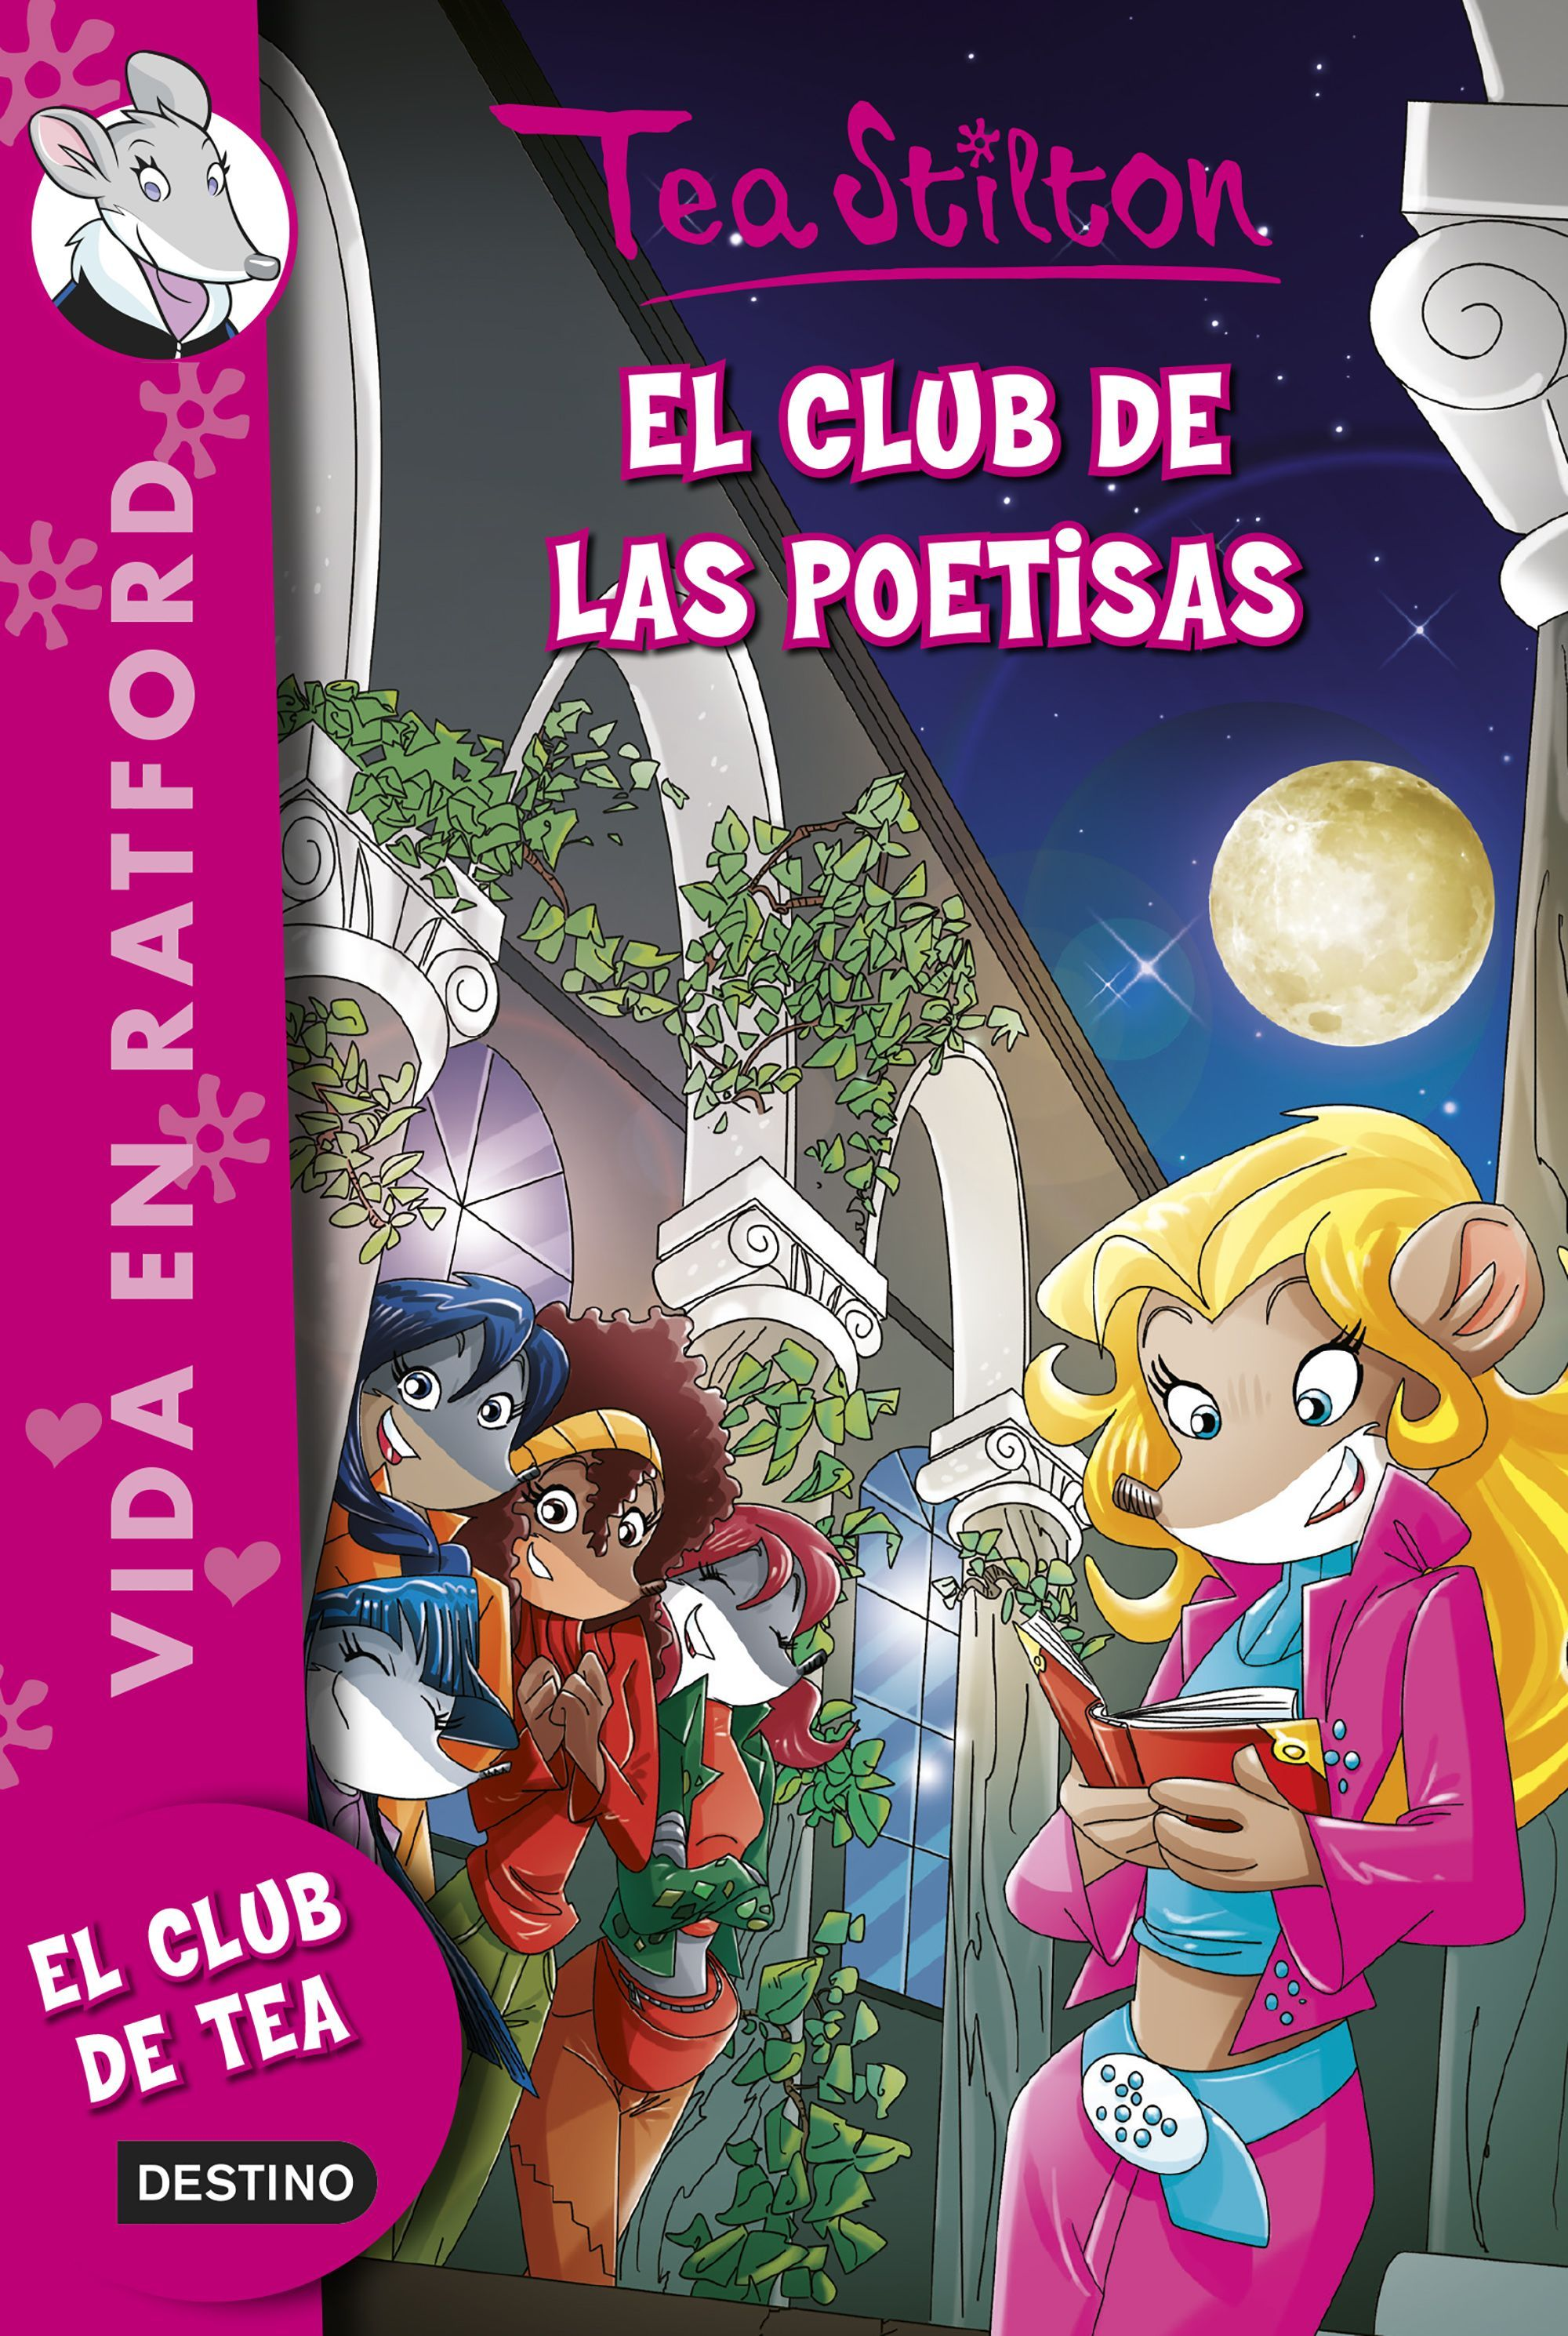 Libros De Tea Stilton Para Leer El Club De Las Poetisas De Tea Stilton Editorial